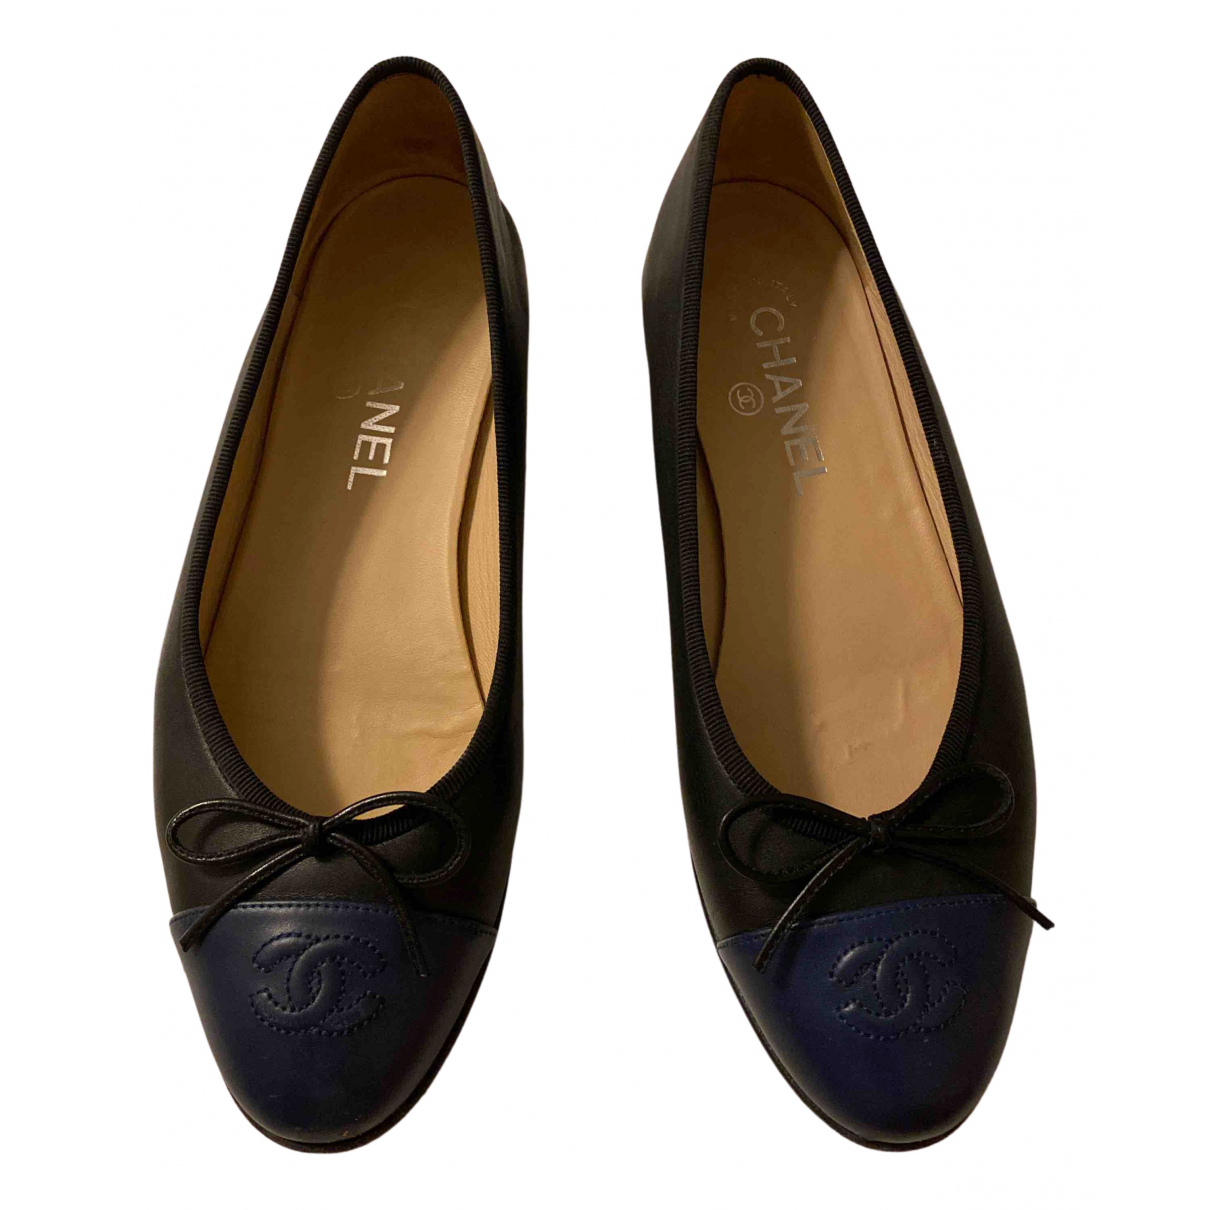 Chanel N Black Leather Ballet flats for Women 38.5 EU